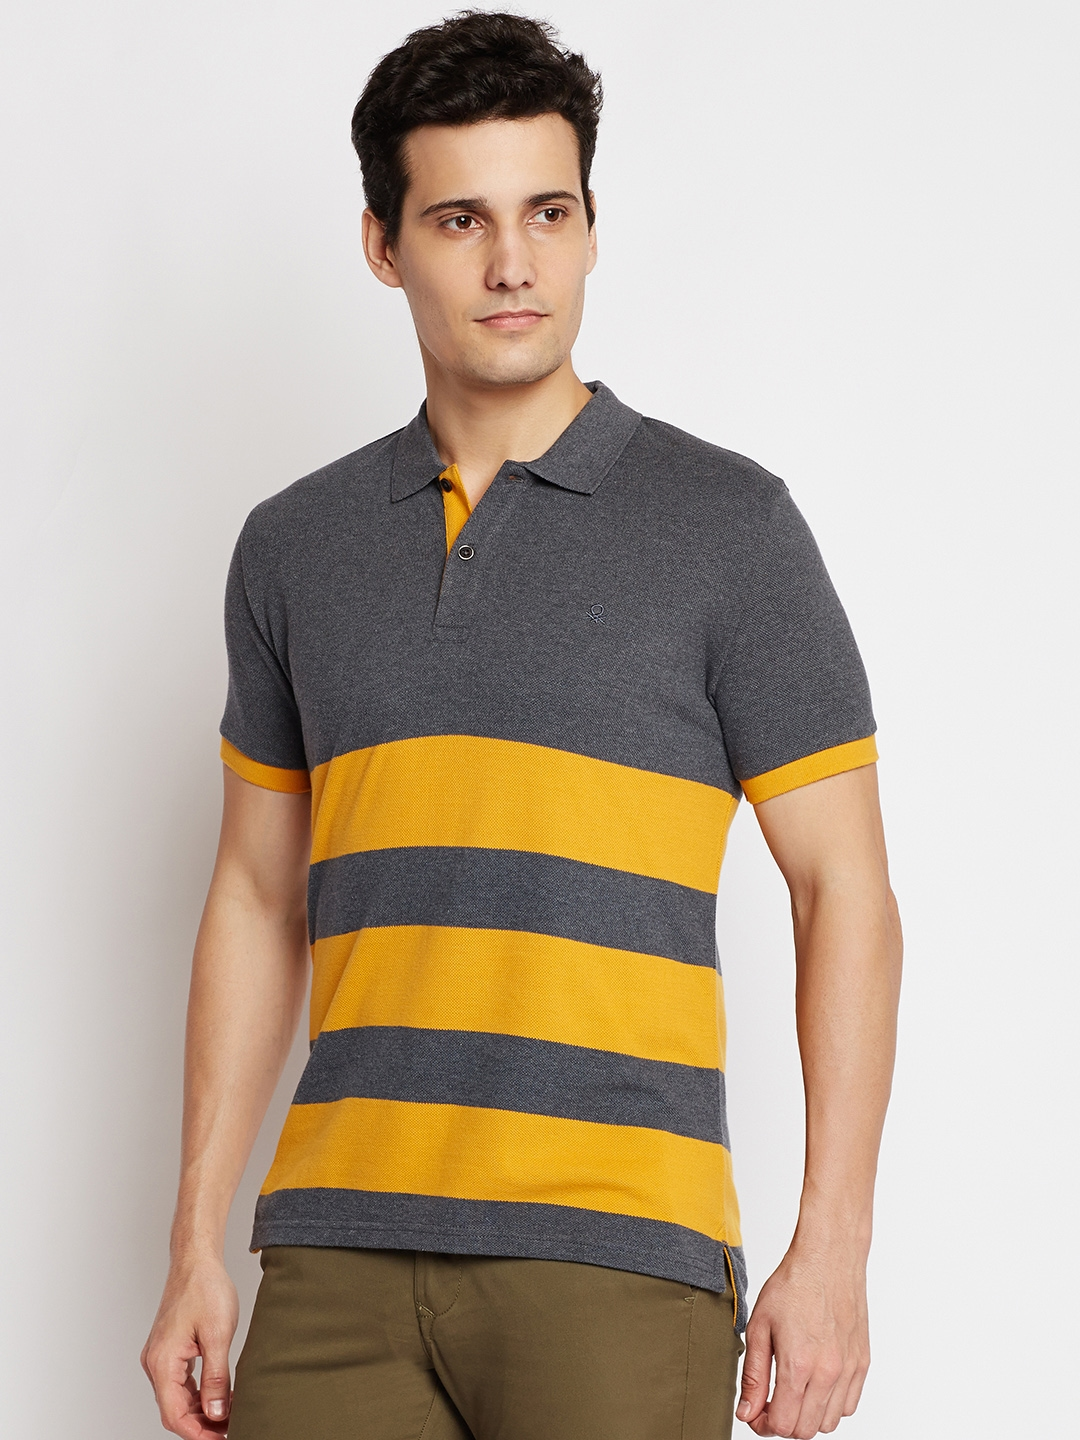 8829a00fd7b Buy United Colors Of Benetton Men Charcoal Grey   Mustard Yellow ...